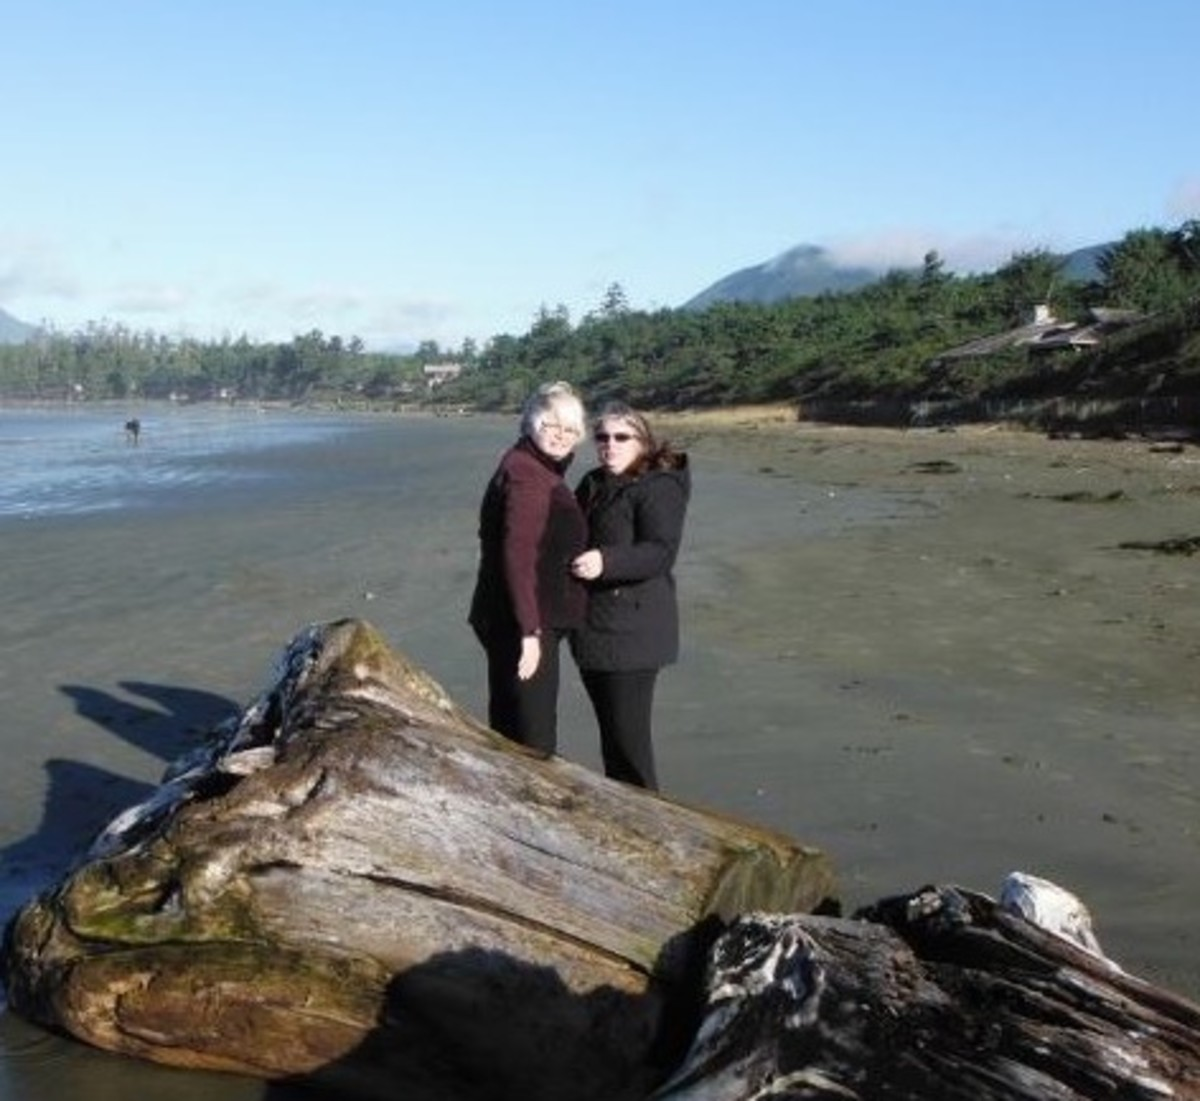 Us on the beach in Tofino. It was cold but that didn't matter.